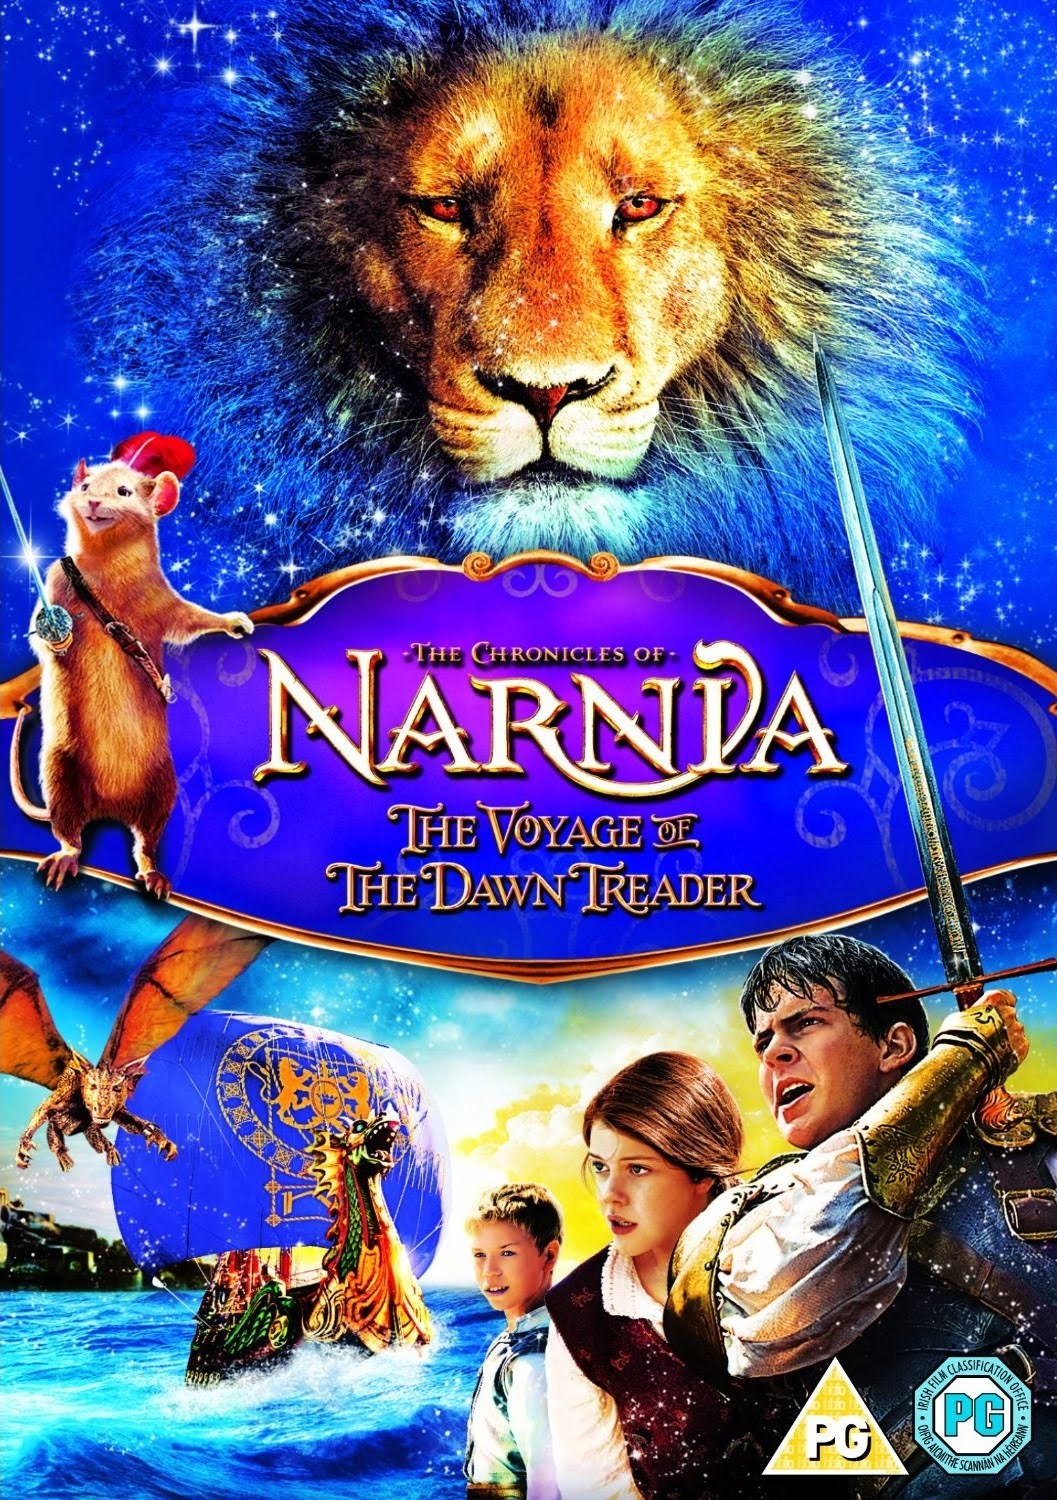 the chronicles of narnia the voyage of the dawn treader book report Transcript of the chronicles of narnia: the voyage of the  the resolution of the book is  the chronicles of narnia: the voyage of the dawn treader.